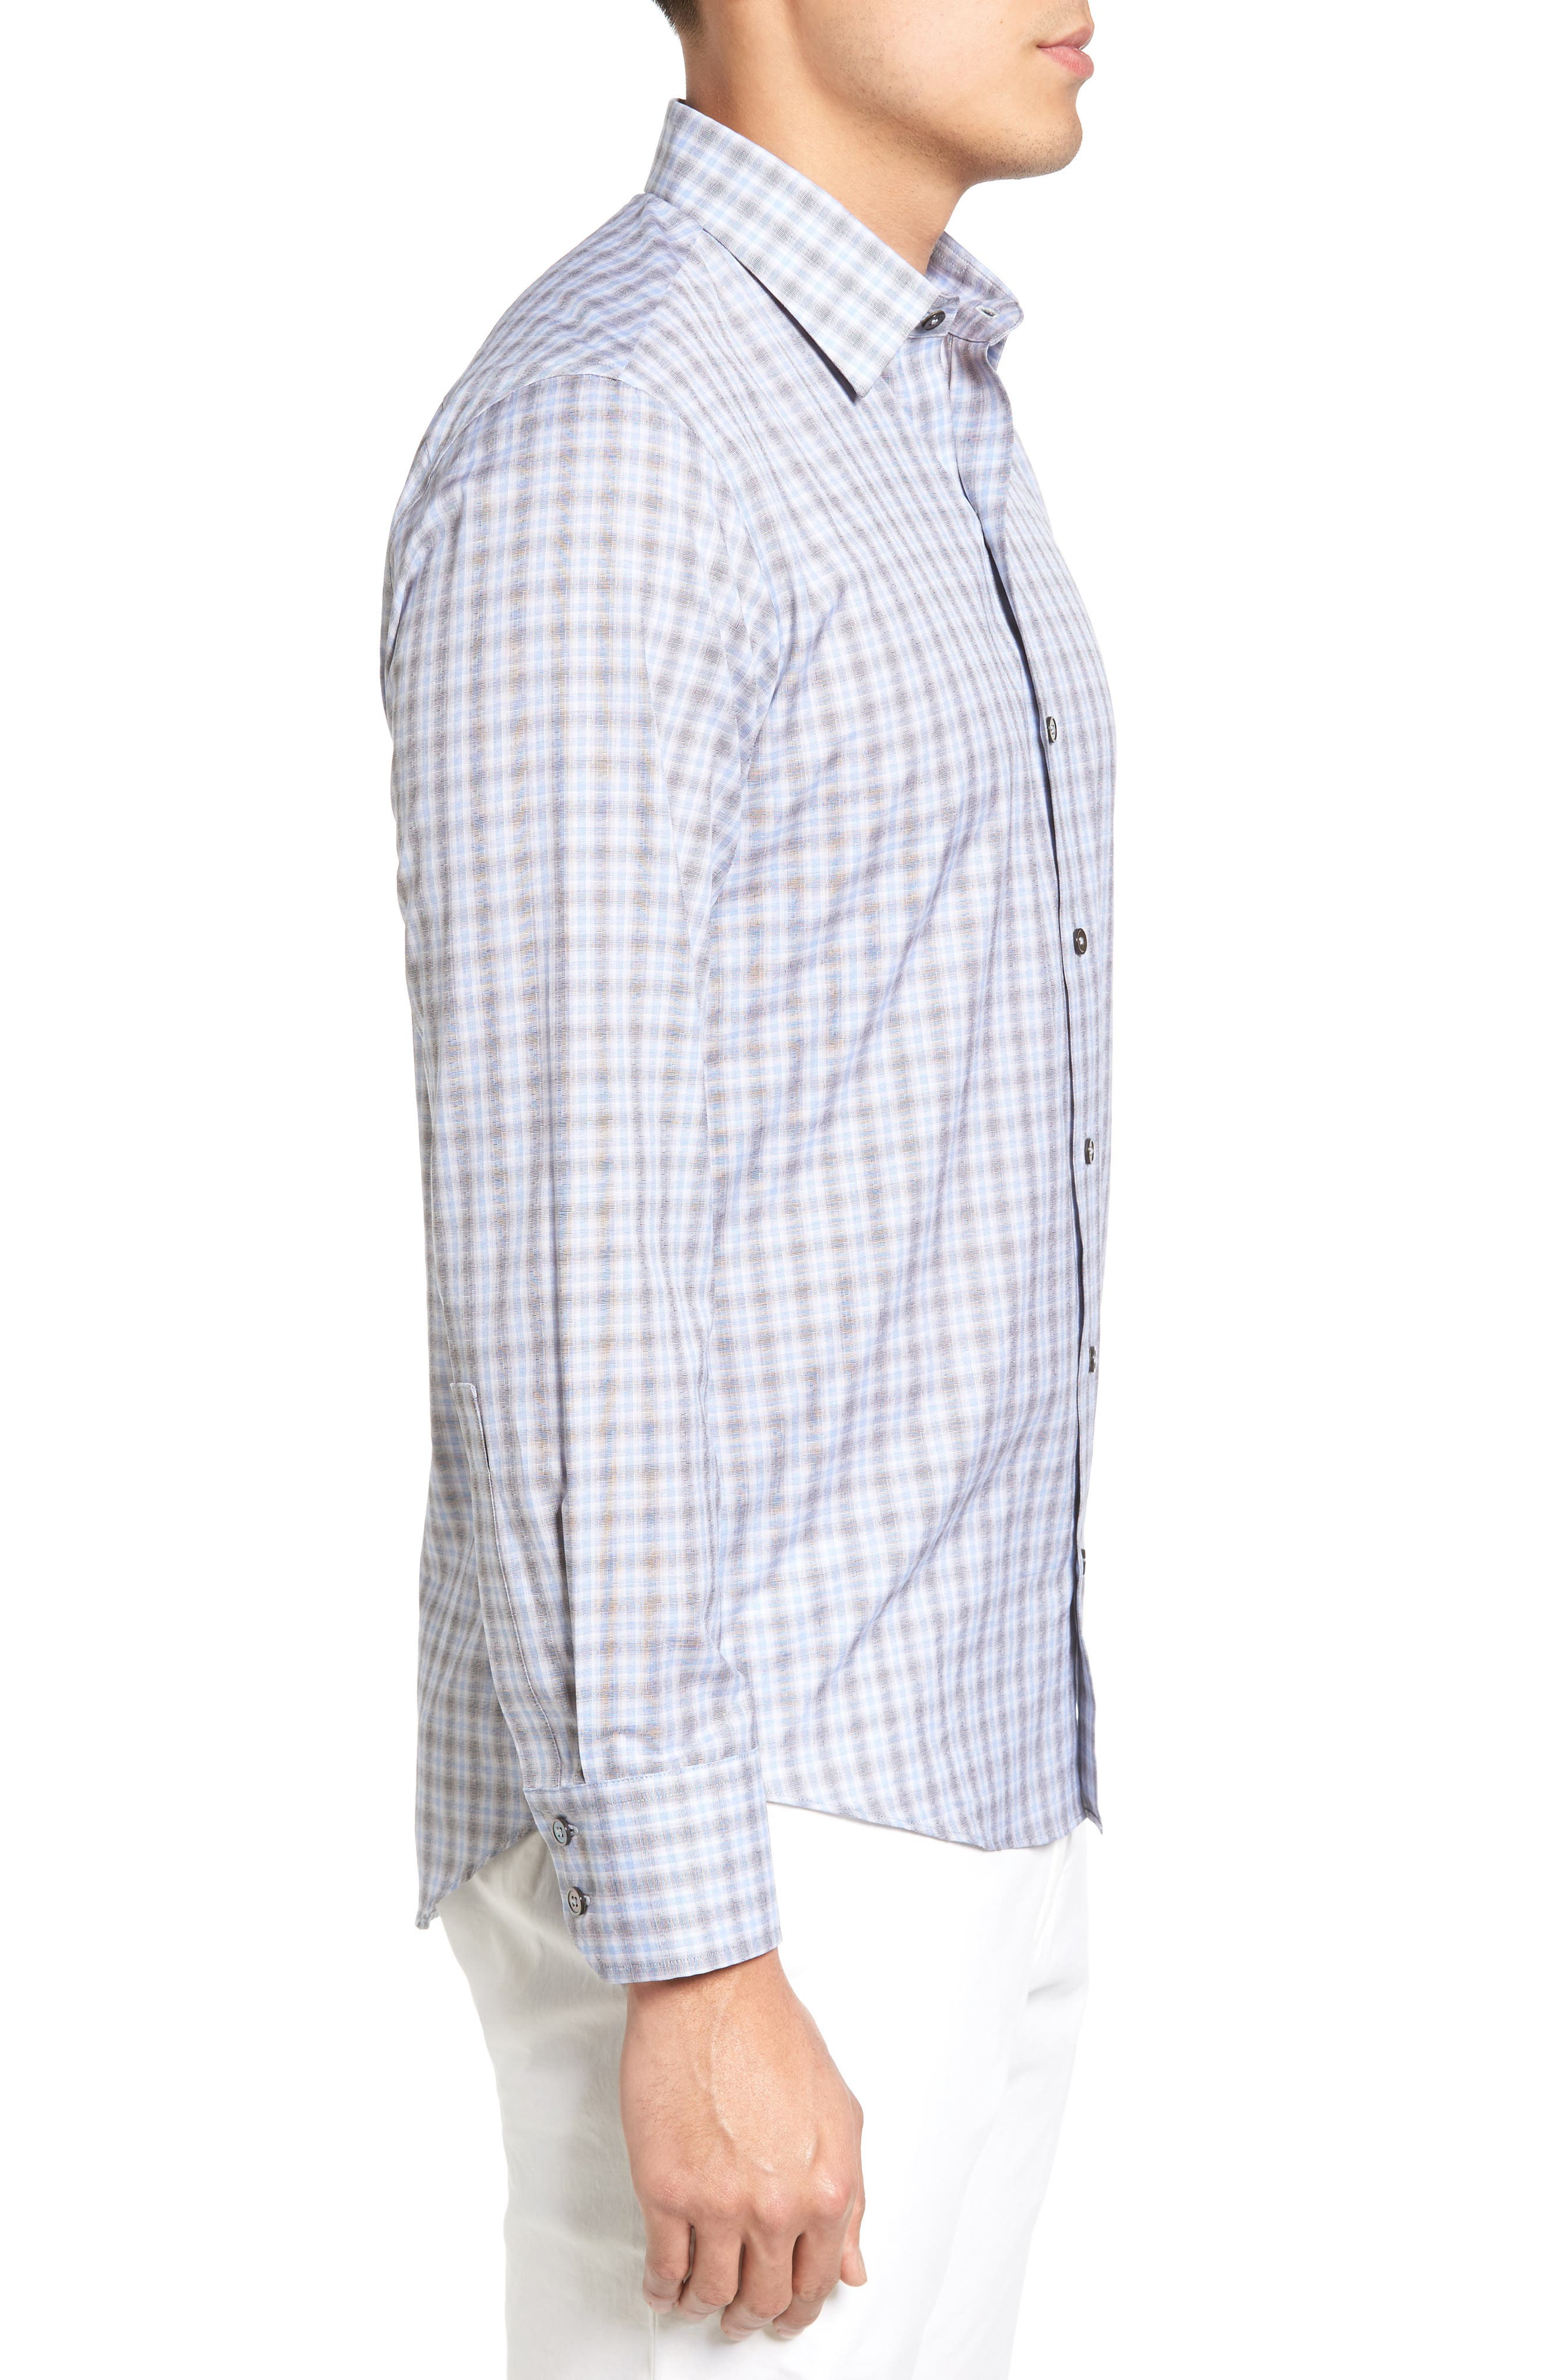 Cristiano Trim Fit Plaid Sport Shirt,                             Alternate thumbnail 3, color,                             Grey